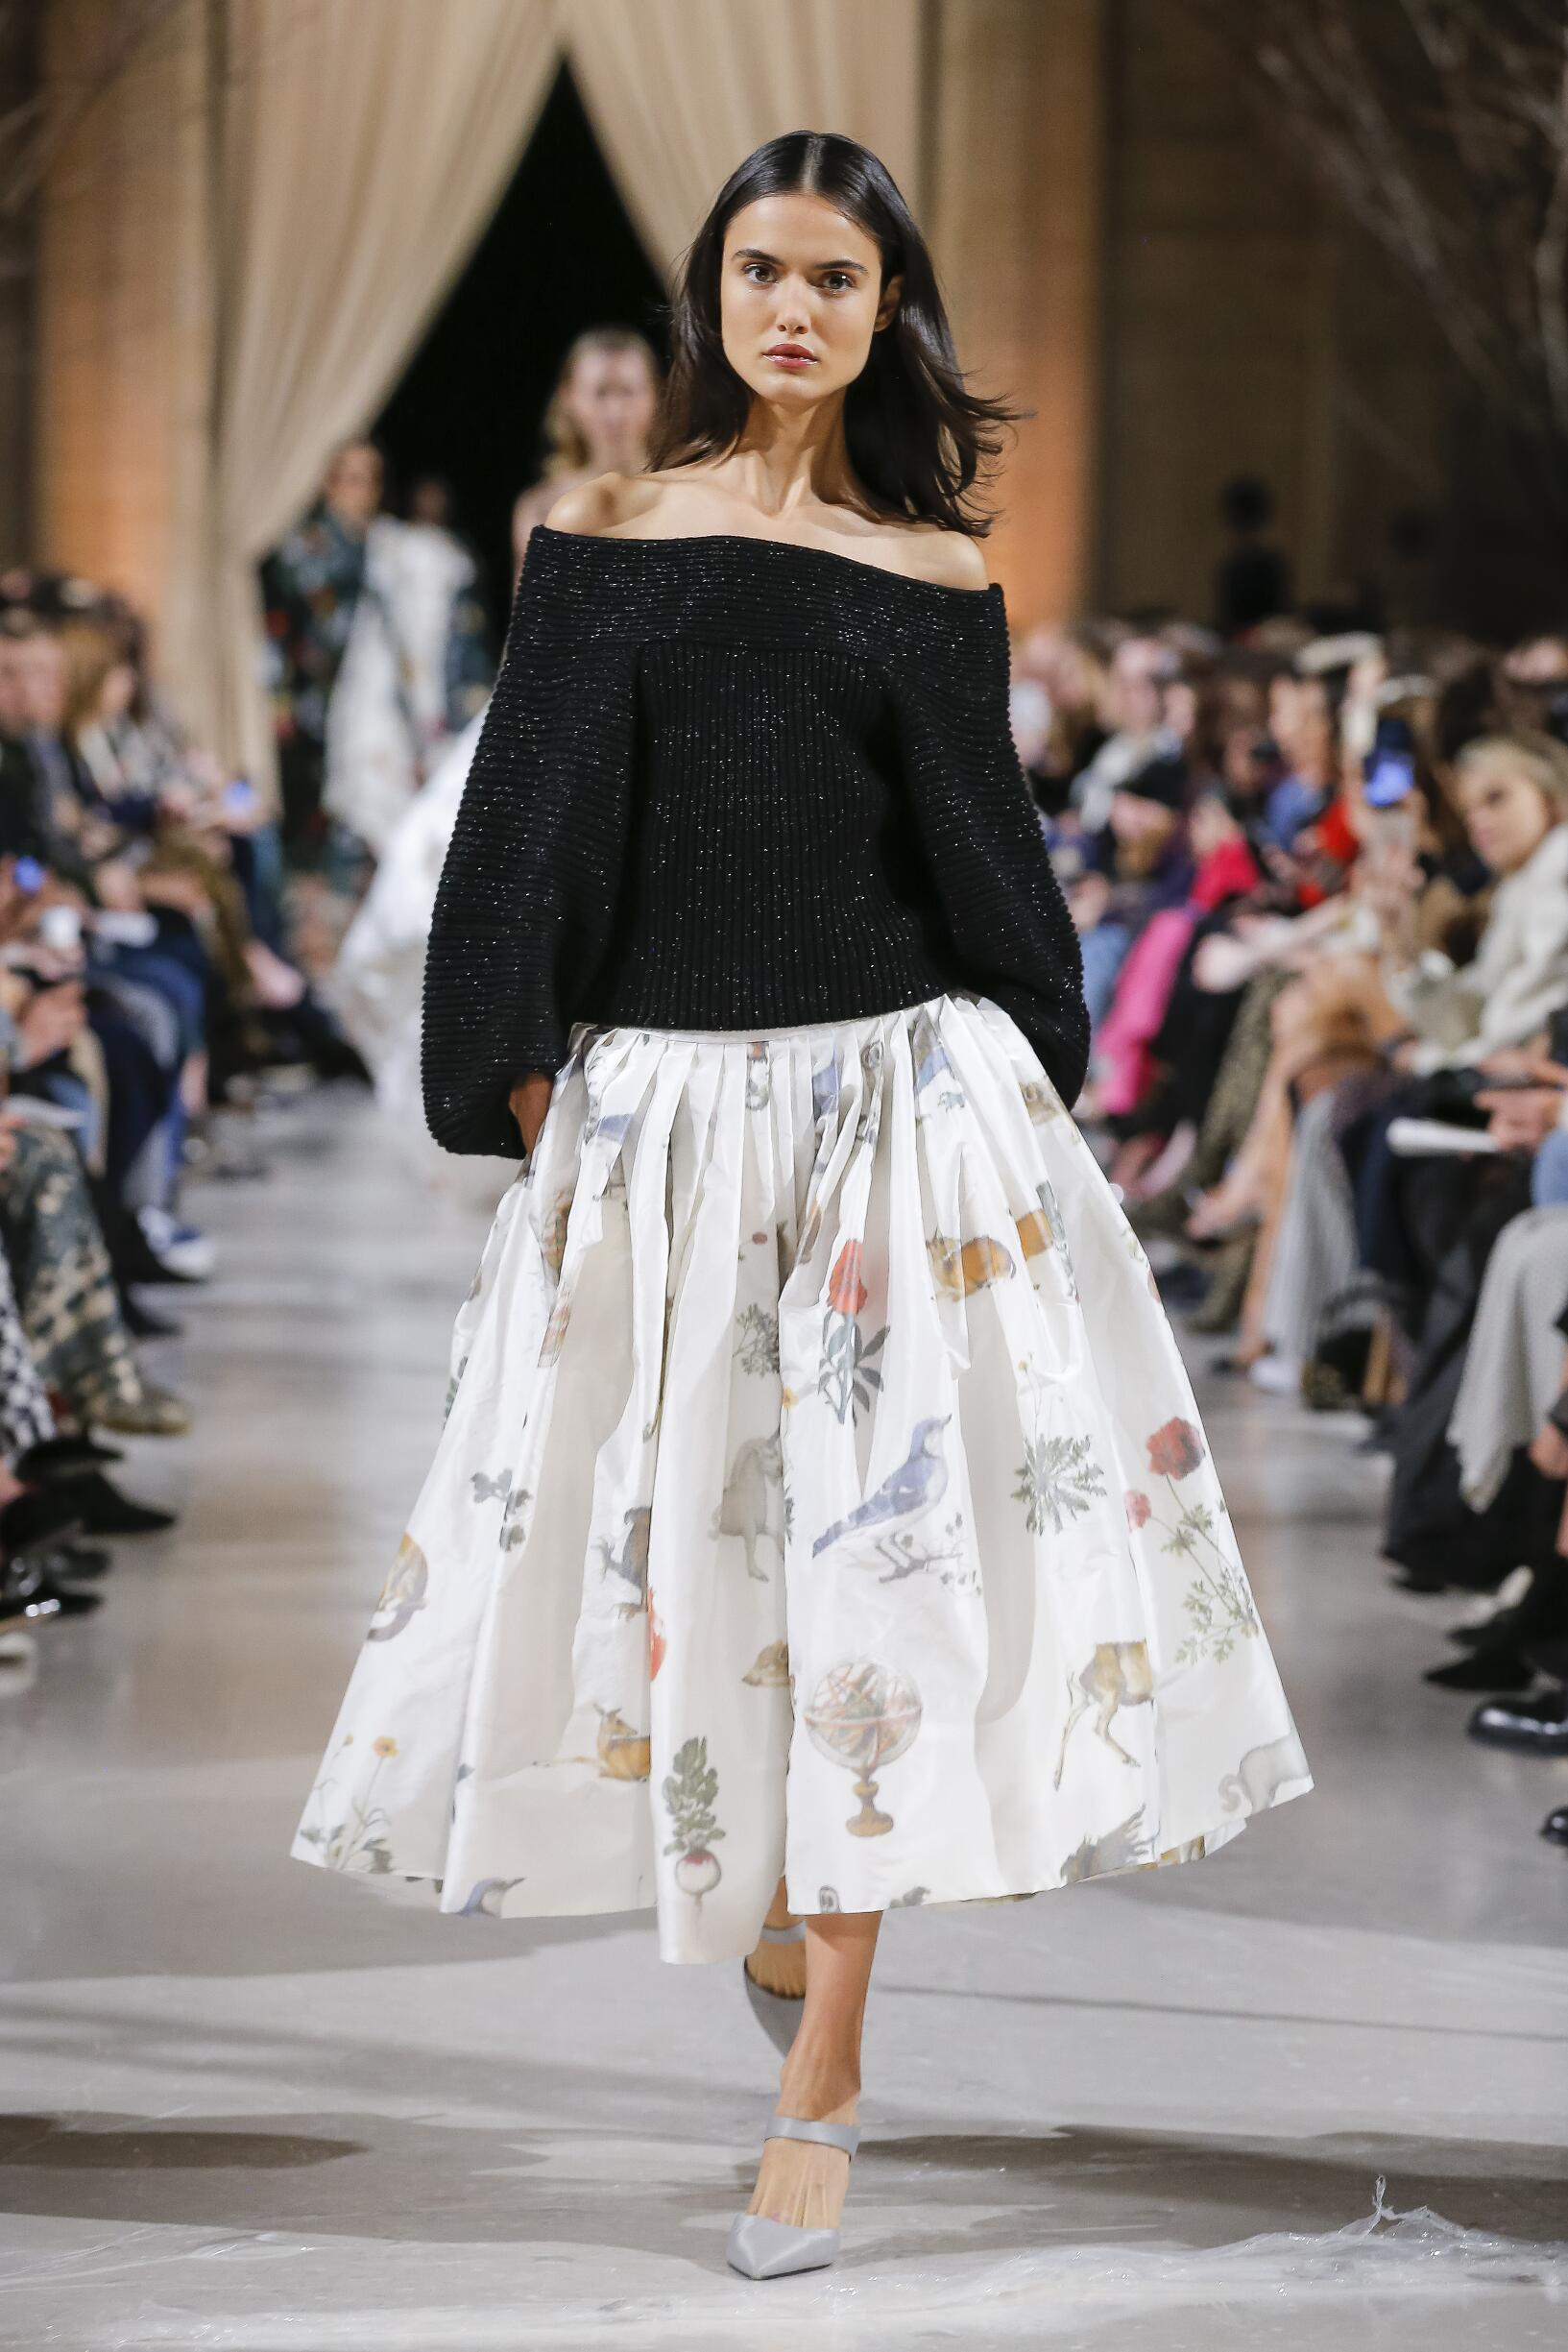 Oscar de la Renta New York Fashion Week Womenswear